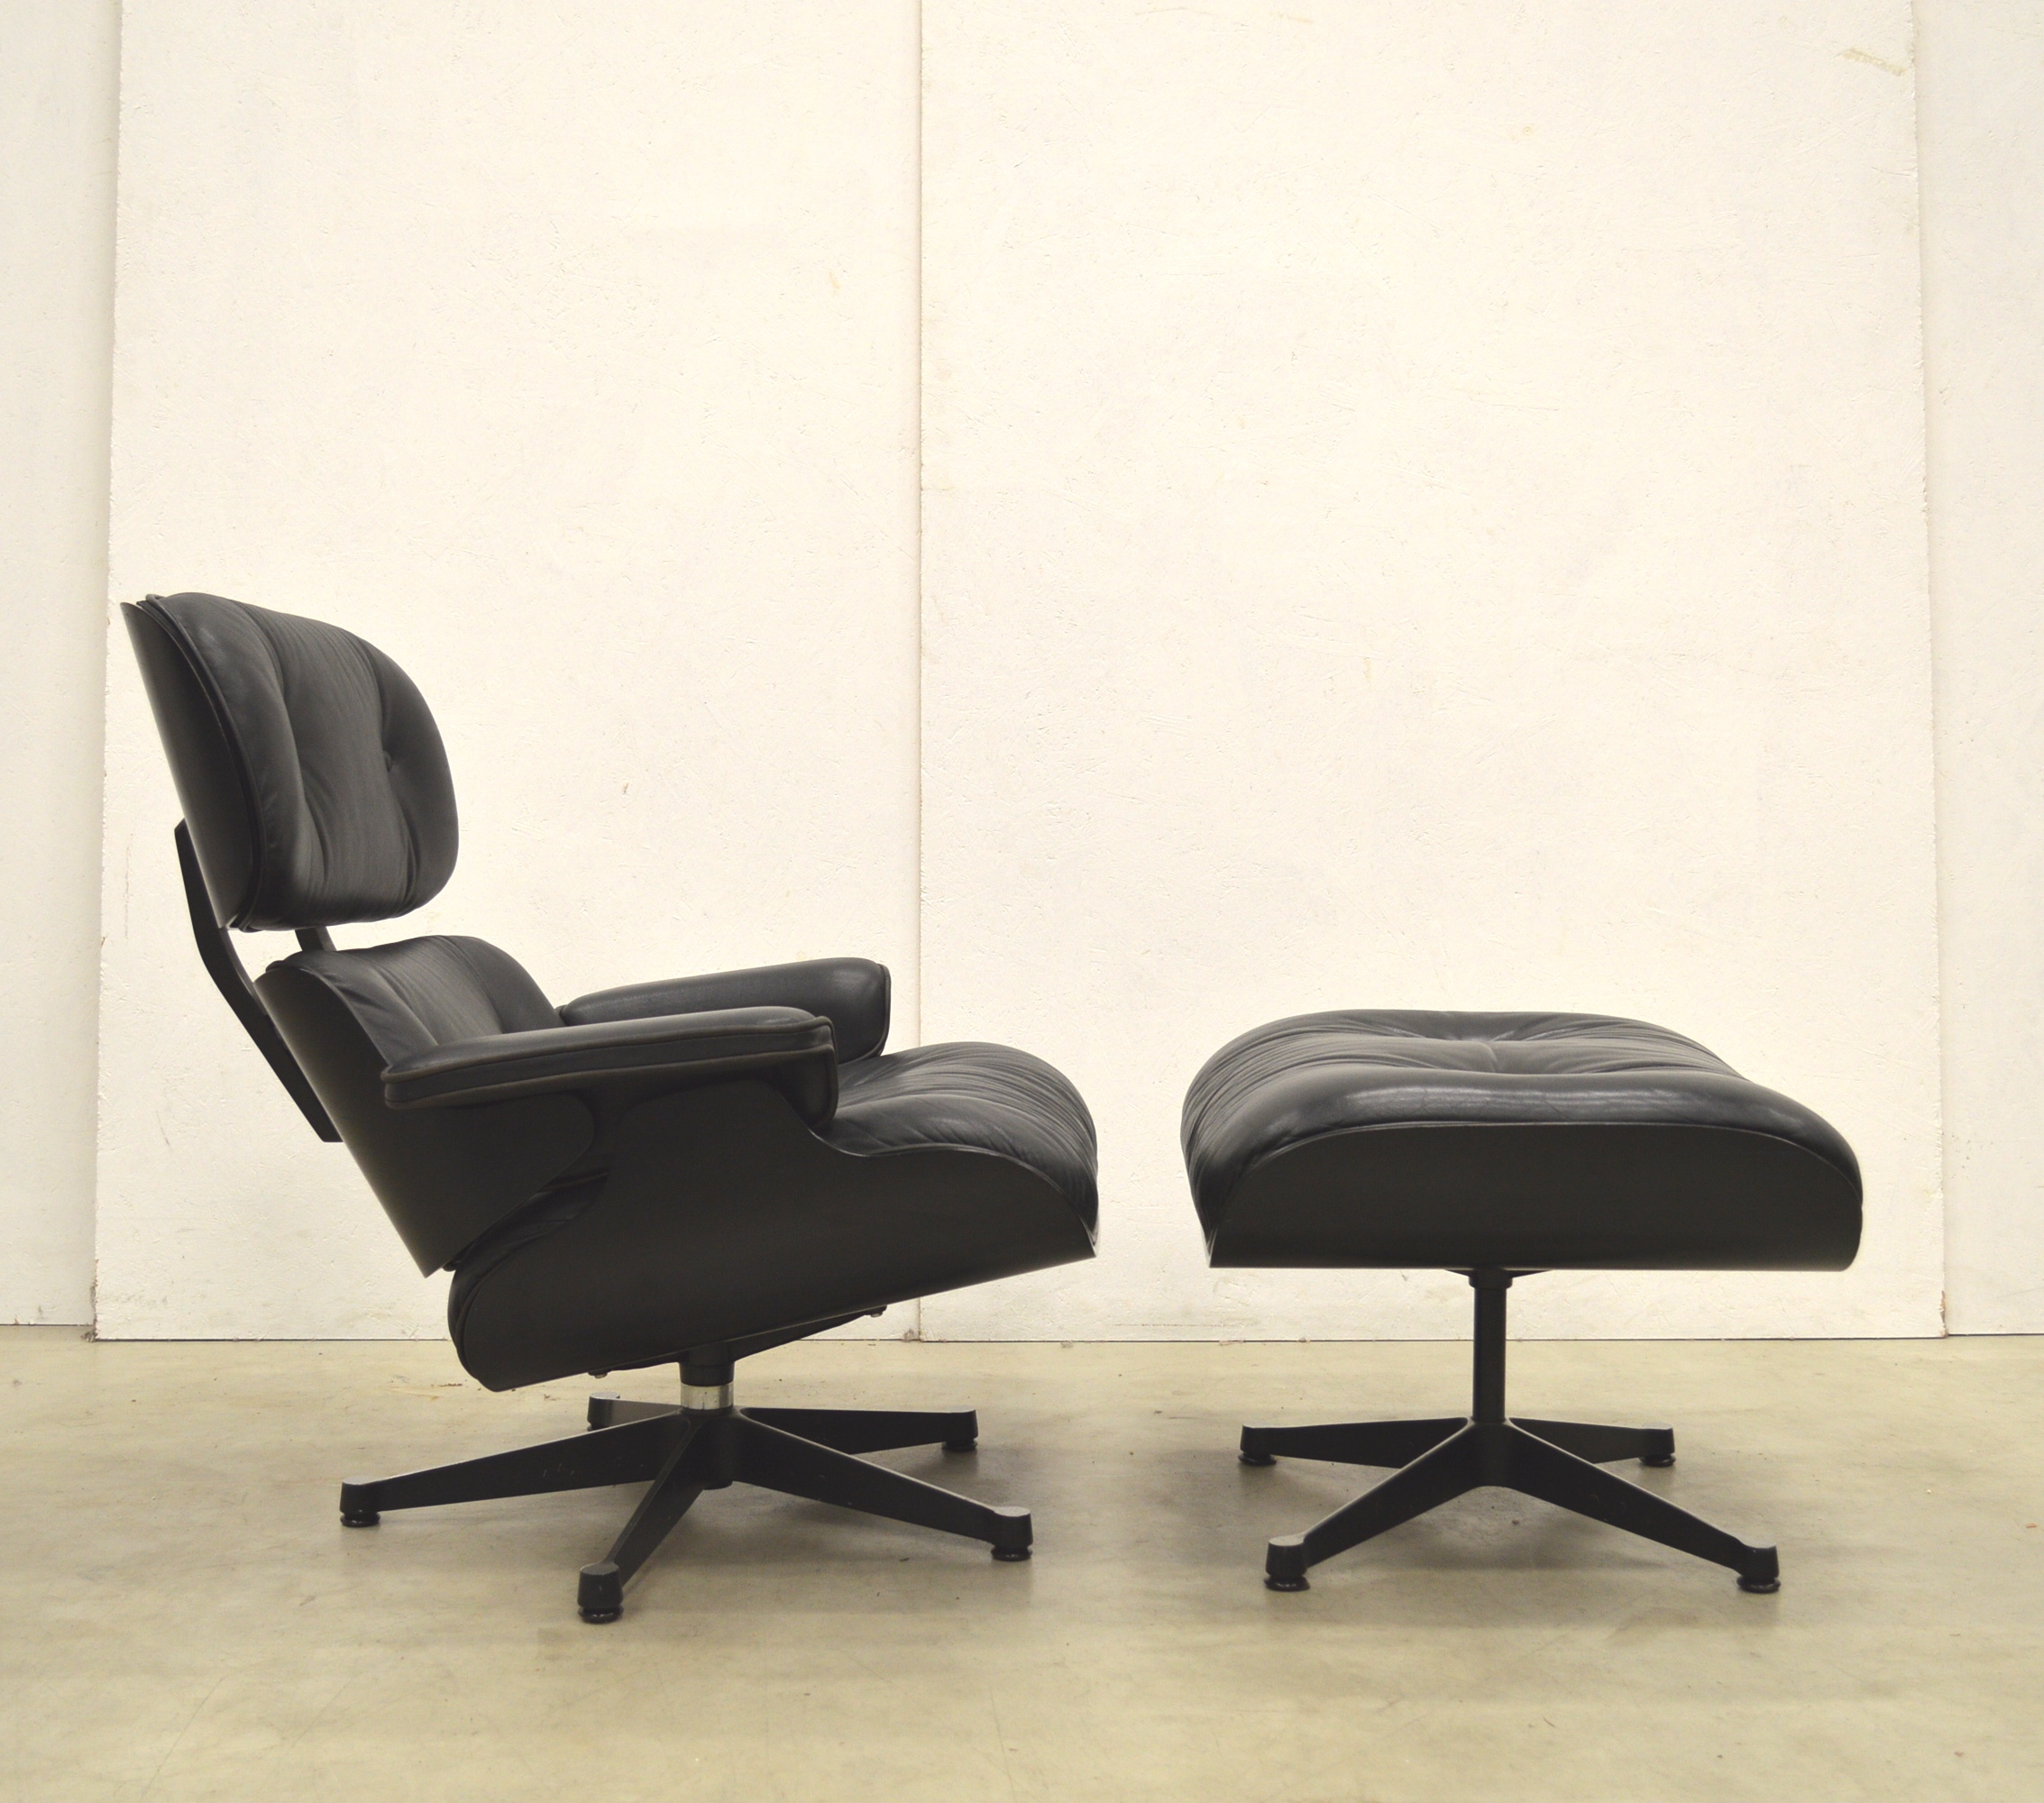 Vitra Eames Lounge Chair Black Vitra Eames Lounge Chair Ottoman Black Edition Interior Aksel